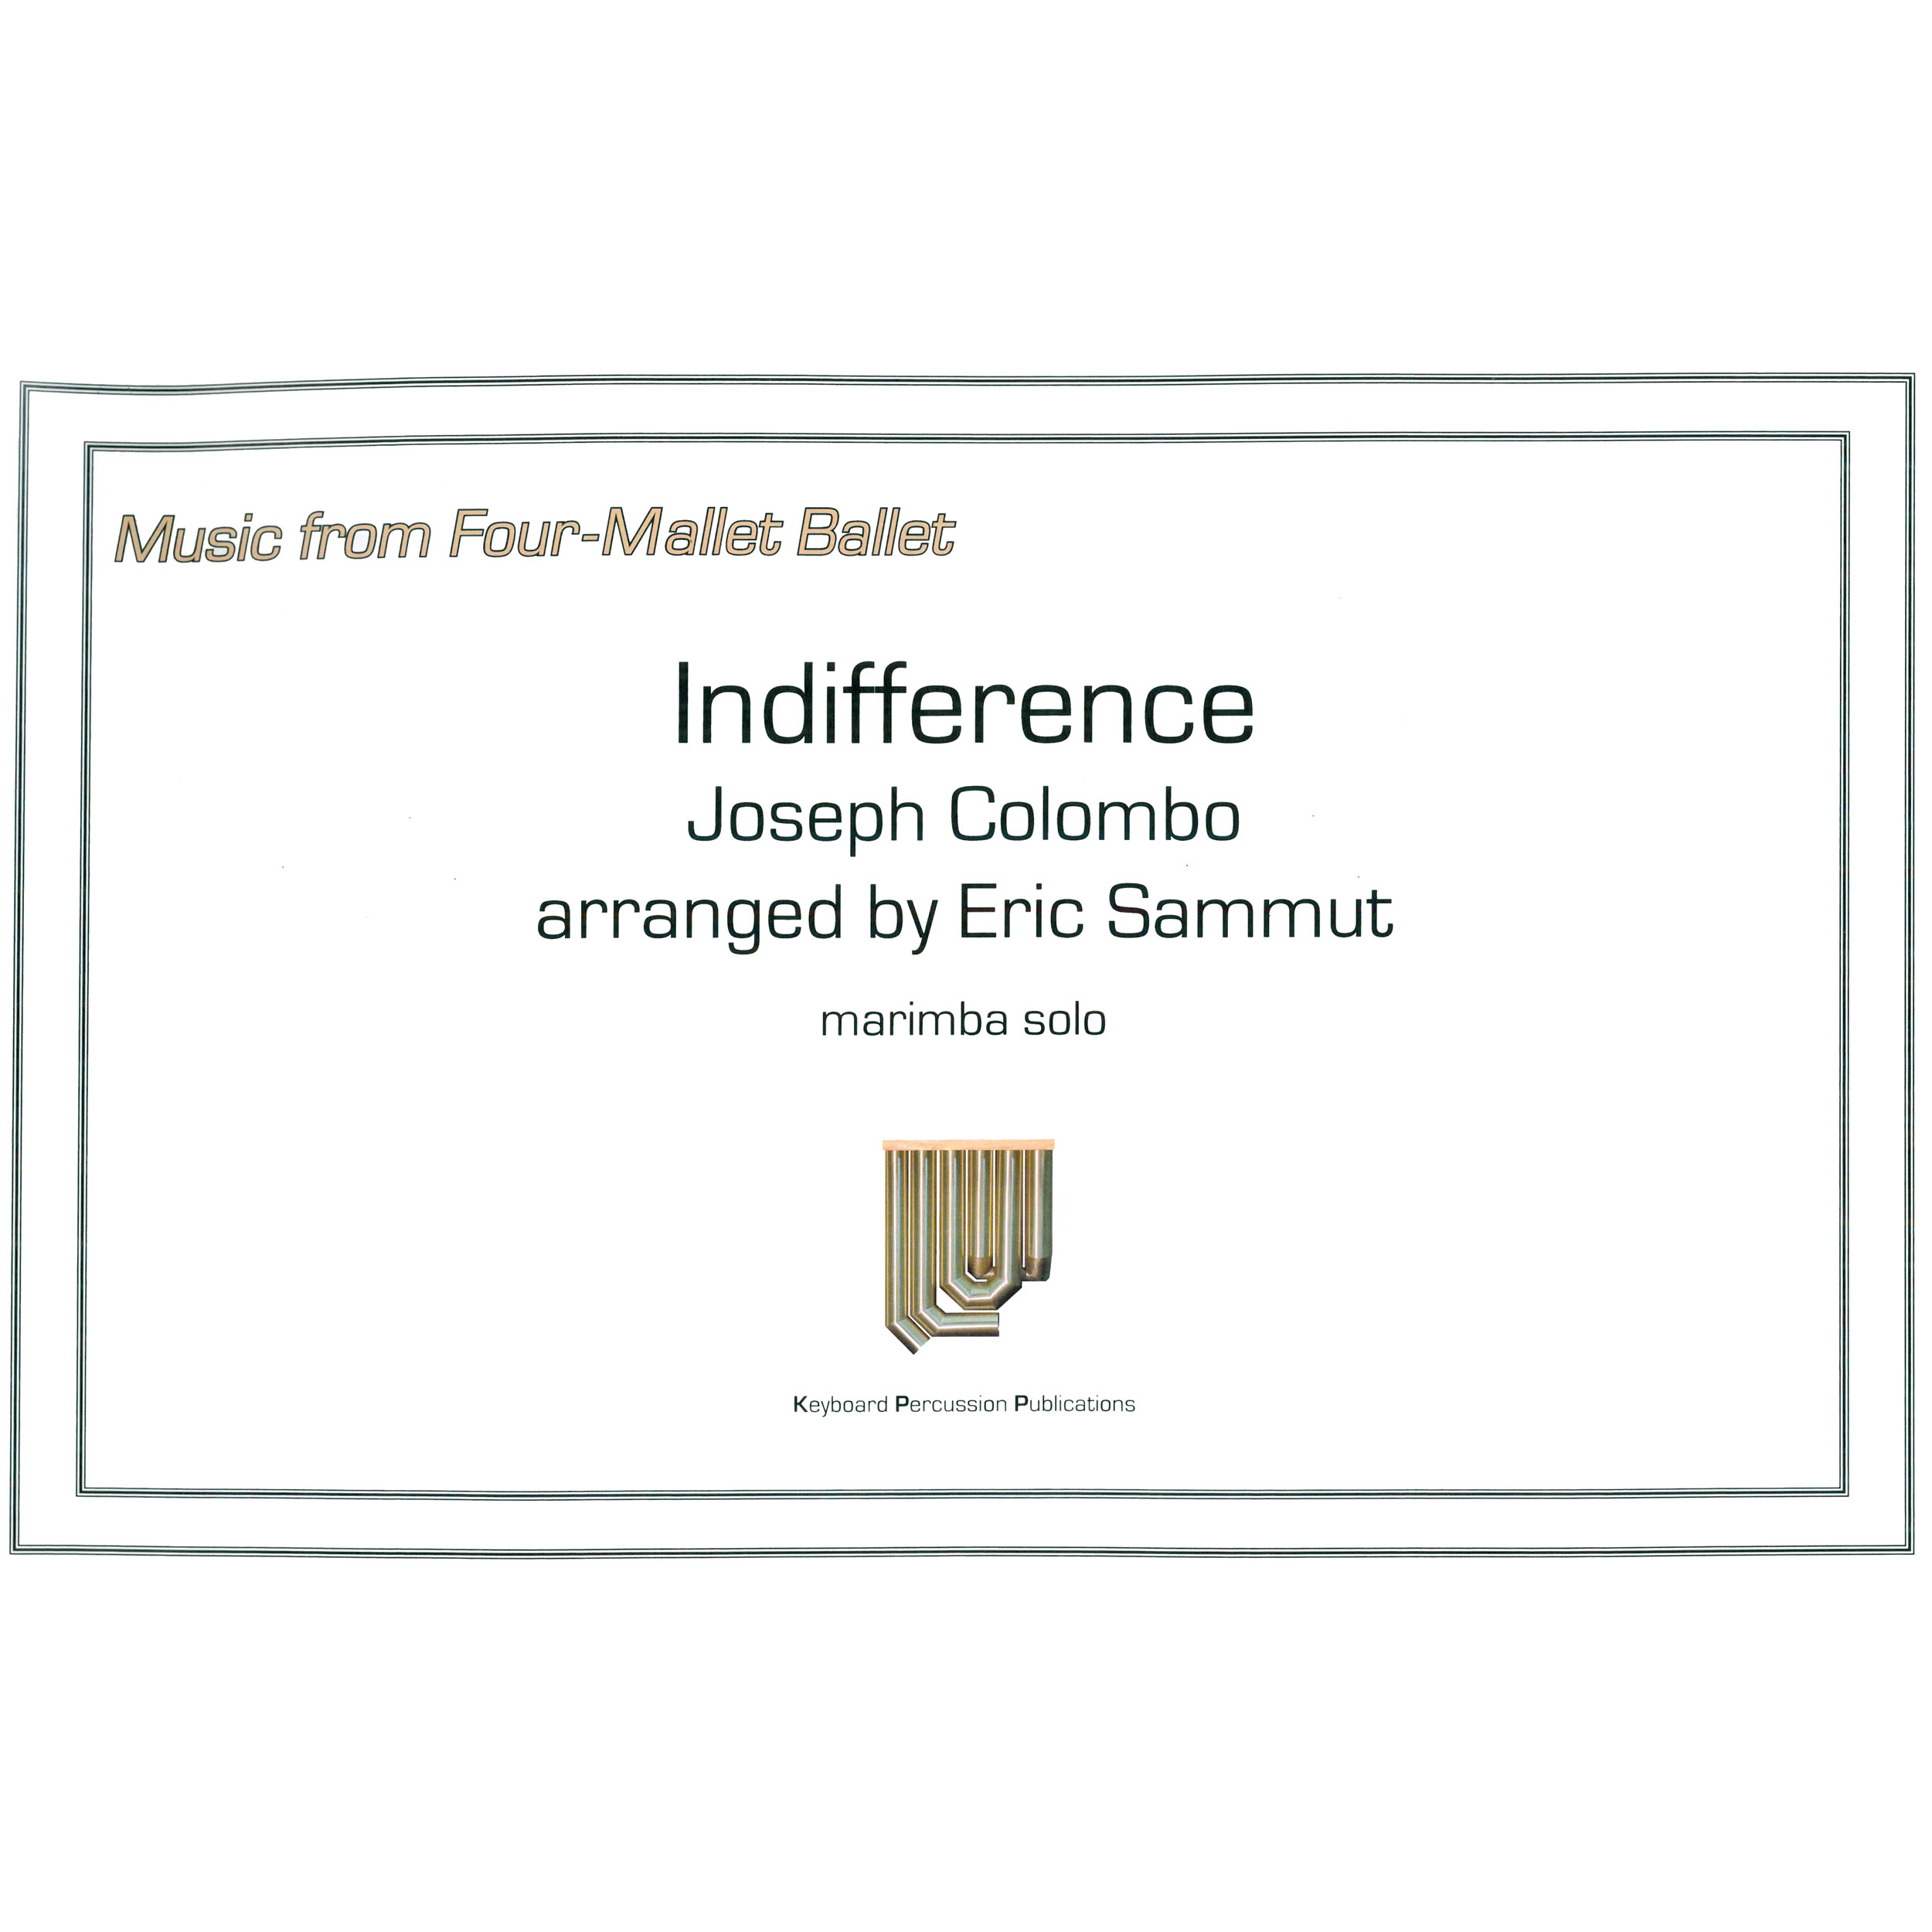 Indifference by Joseph Columbo arr. Eric Sammut